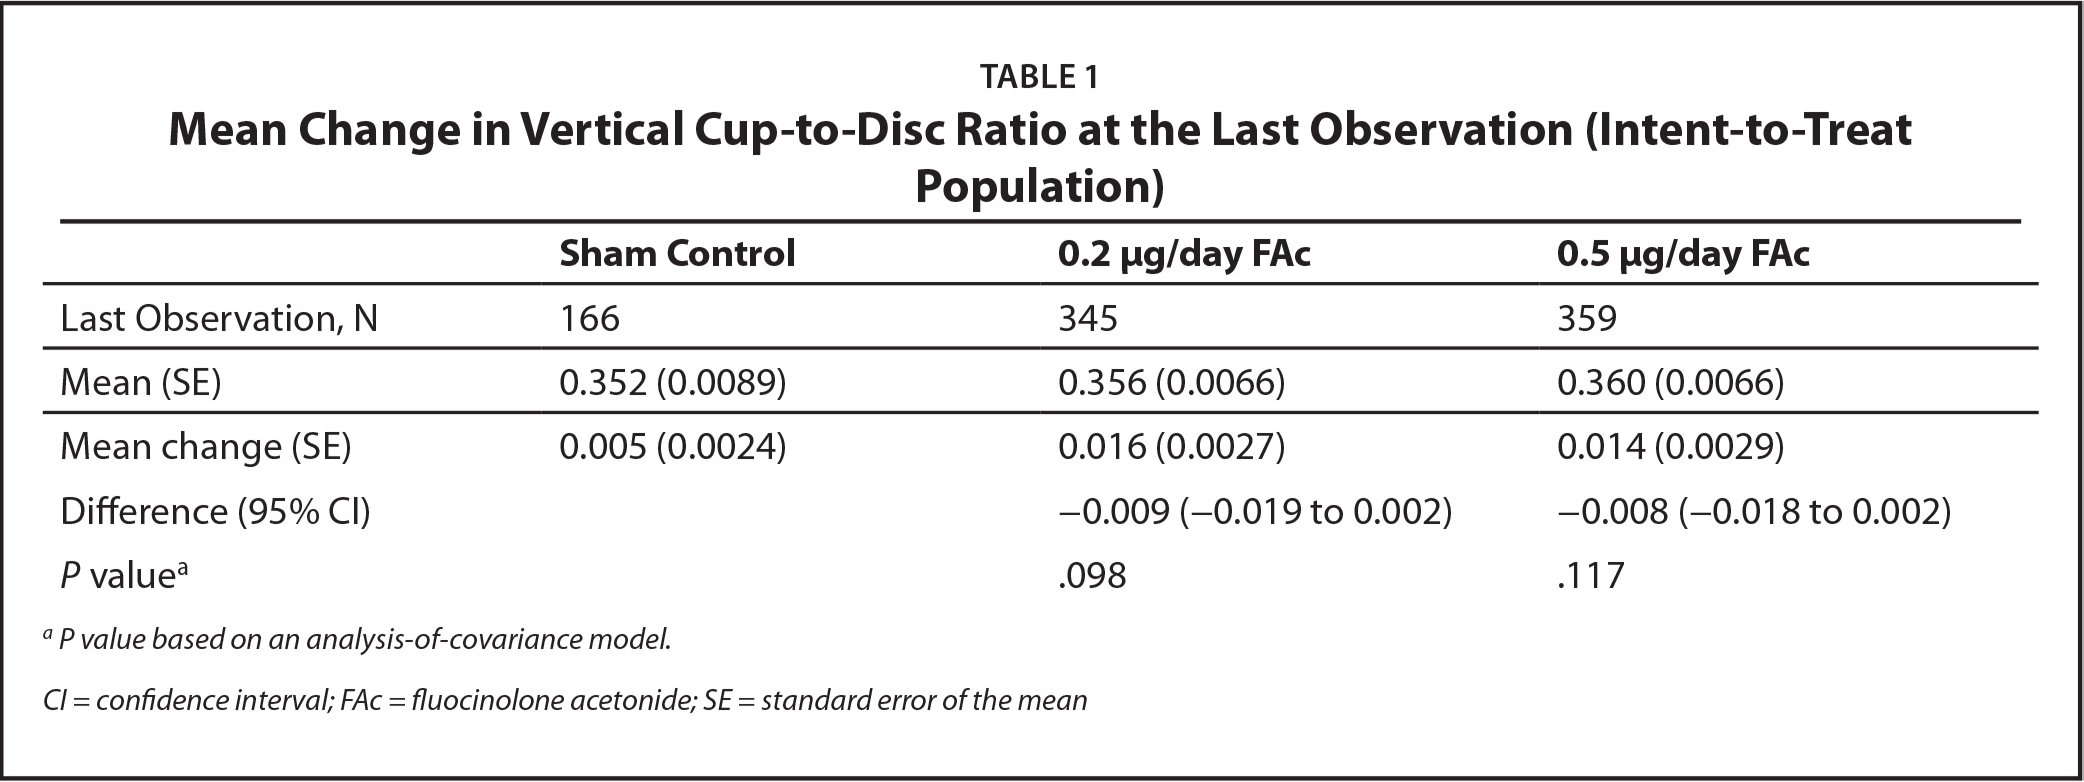 Mean Change in Vertical Cup-to-Disc Ratio at the Last Observation (Intent-to-Treat Population)